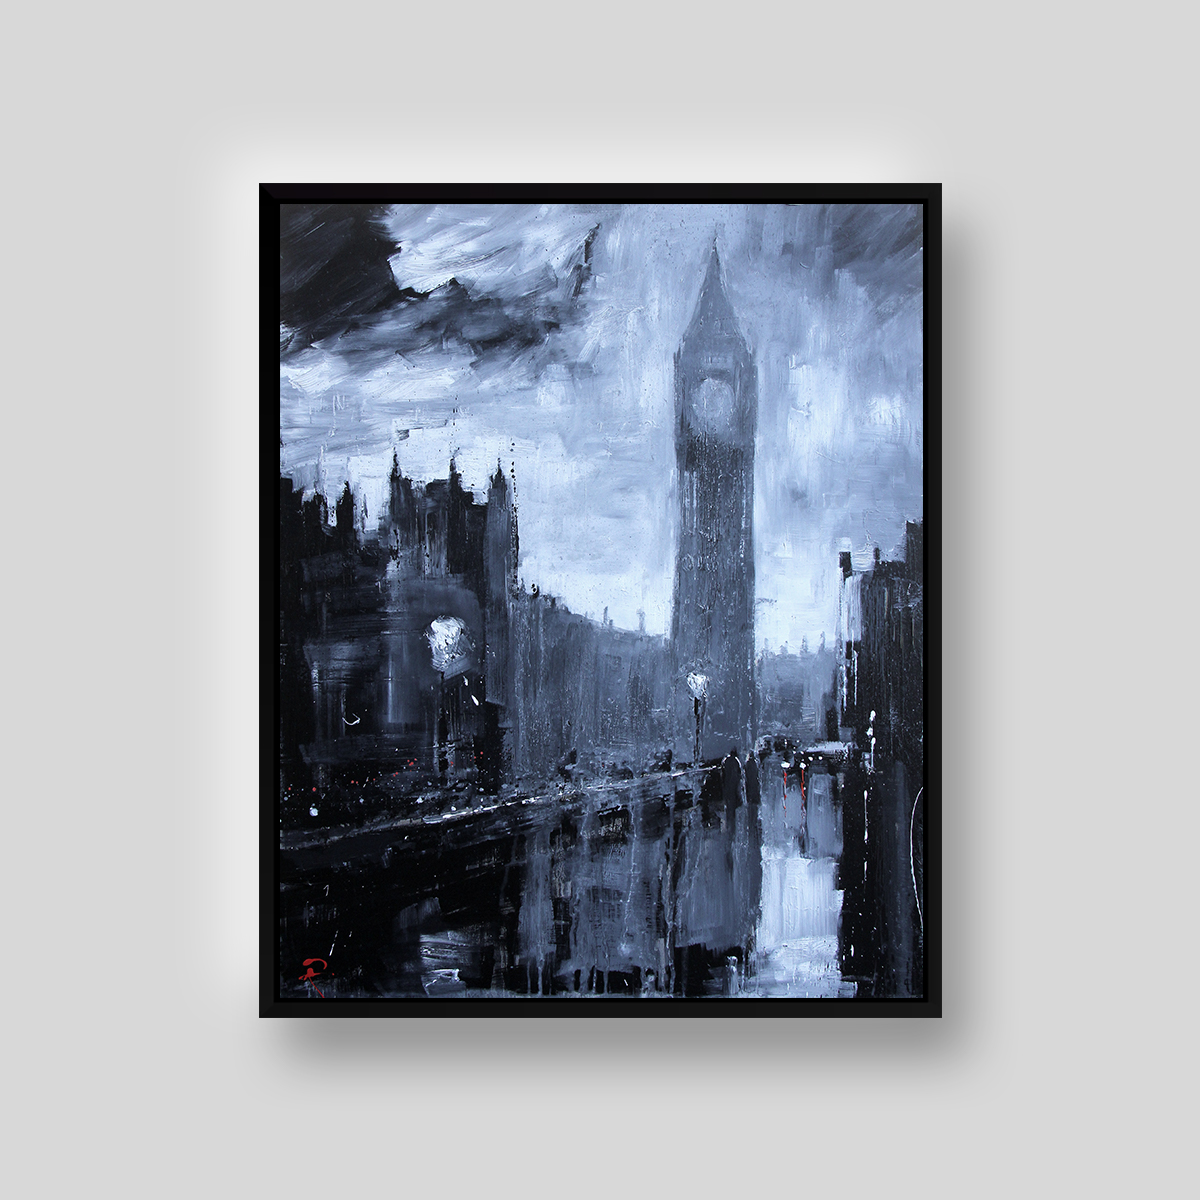 Winds Over Westminster by Paul Kenton, UK contemporary cityscape artist, an original painting from his London Collection